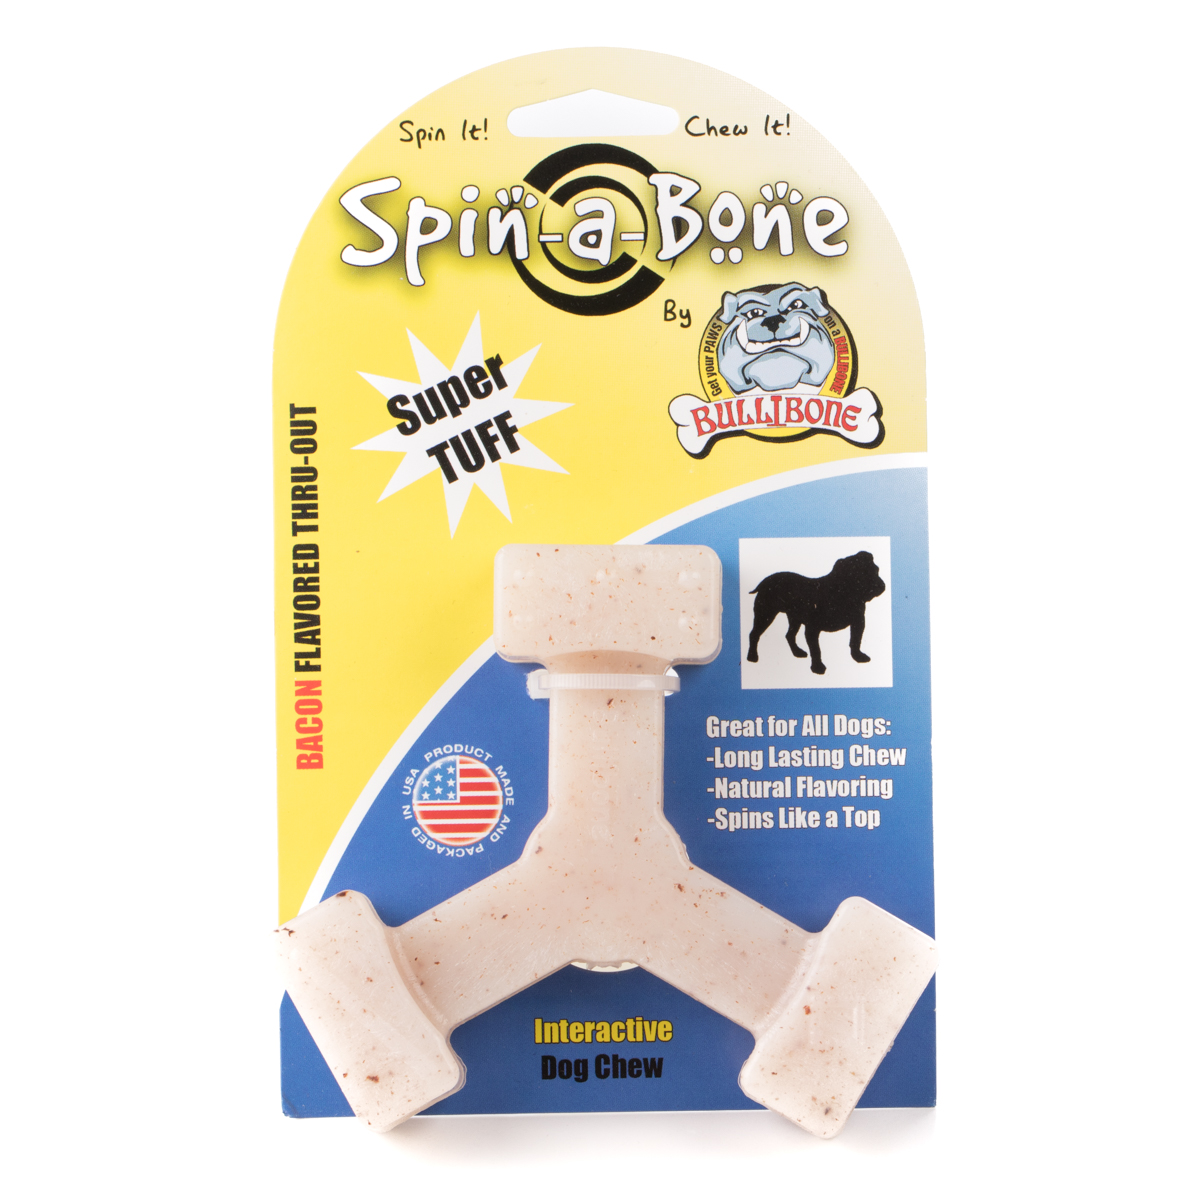 Spin-a-bone - BACON